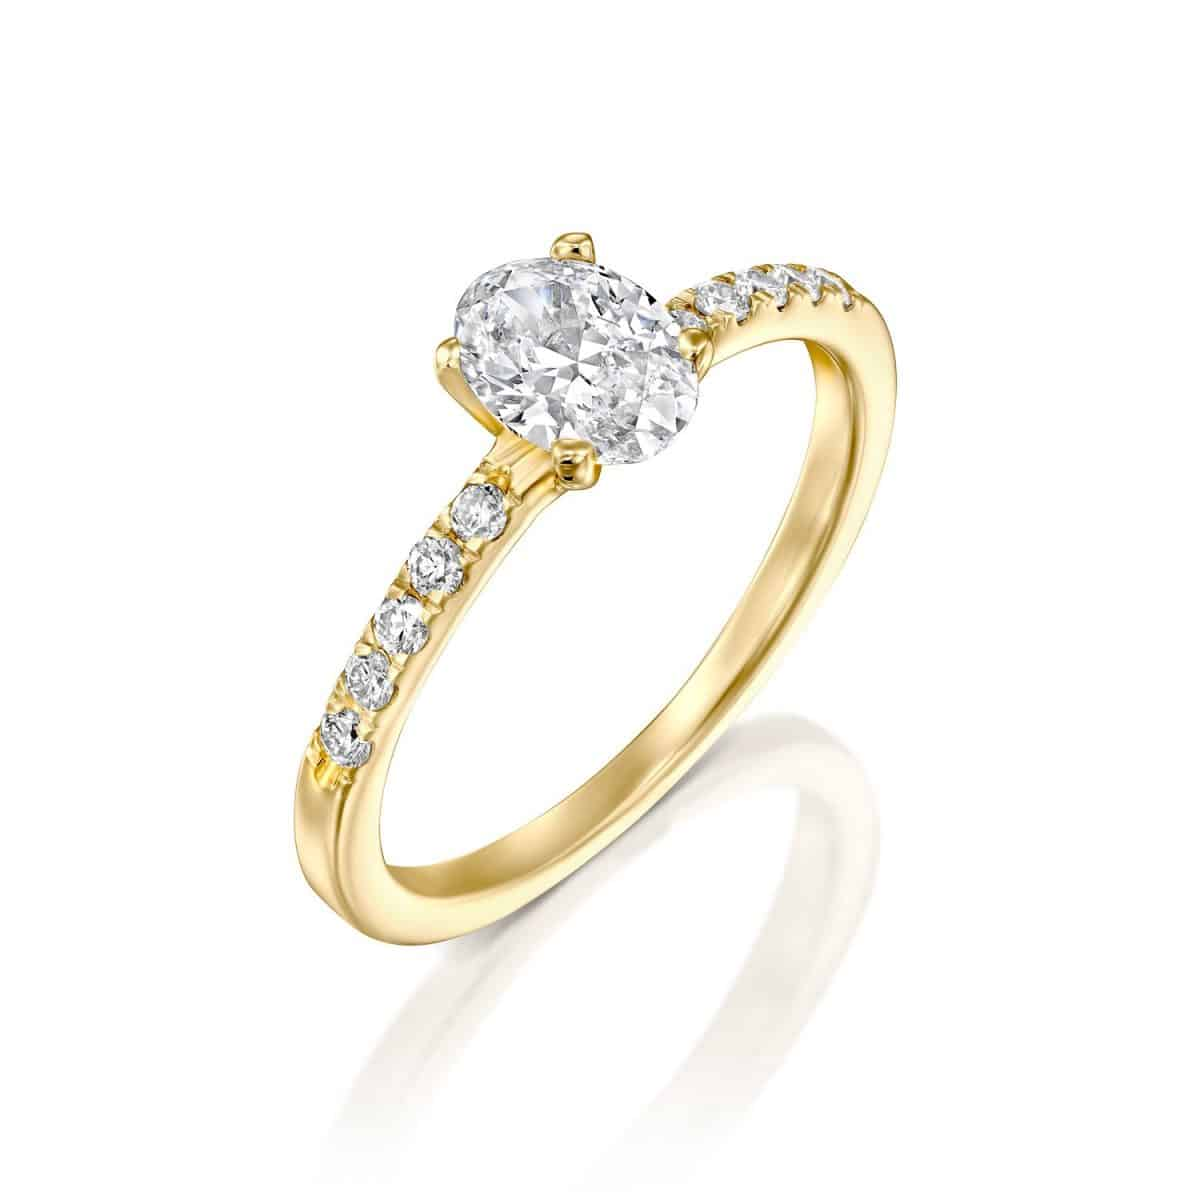 Oval - Lab Grown Diamond Engagement Ring 1.10ct. - main